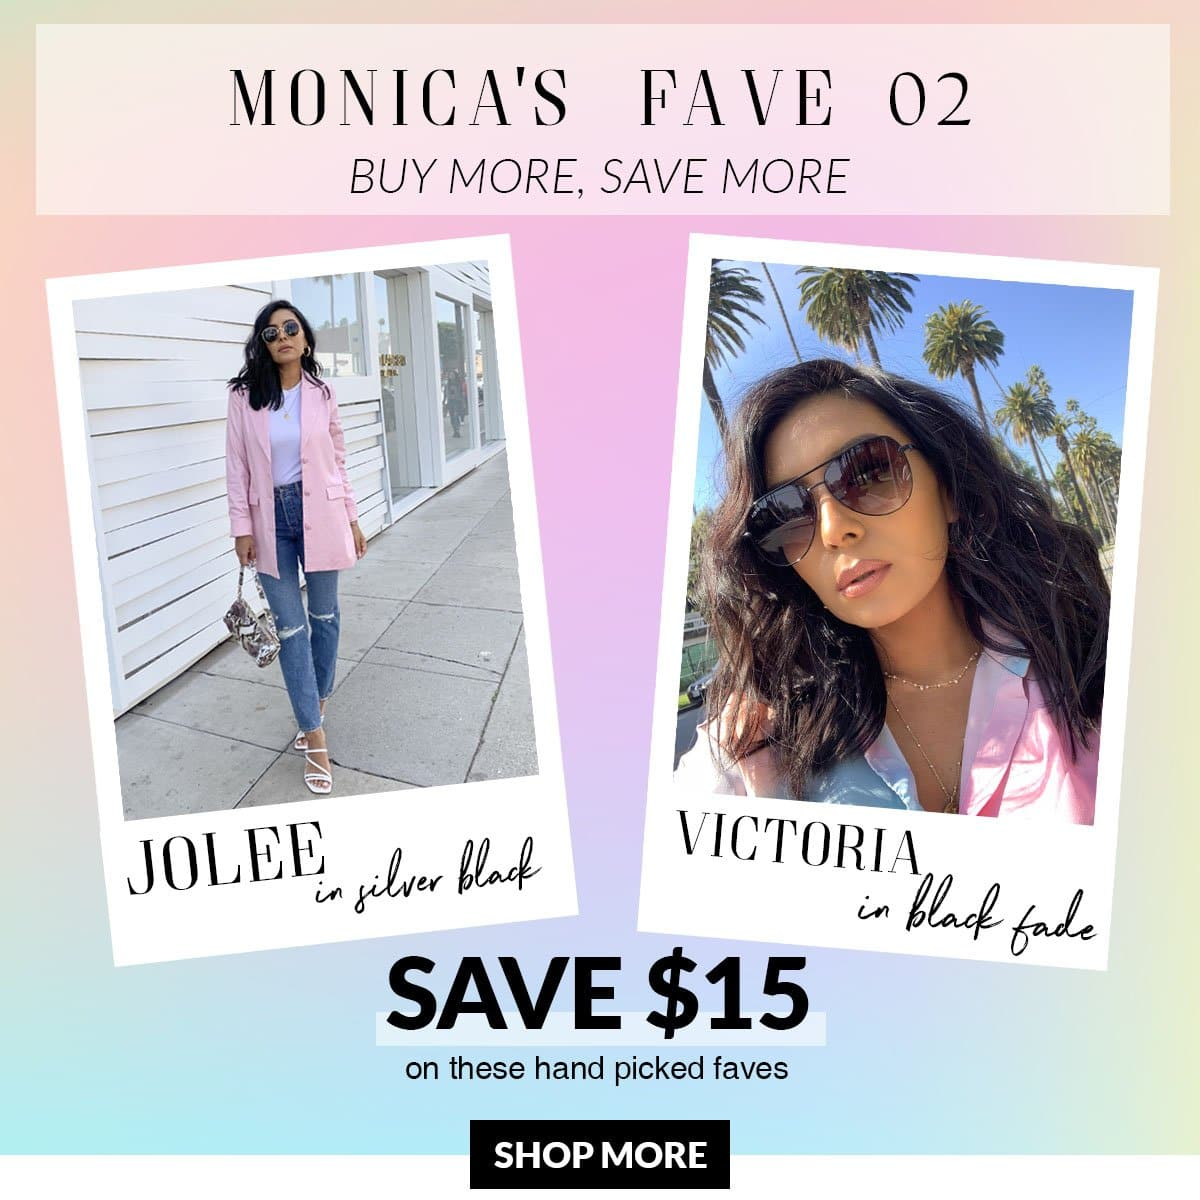 MONICA'S FAVES 02